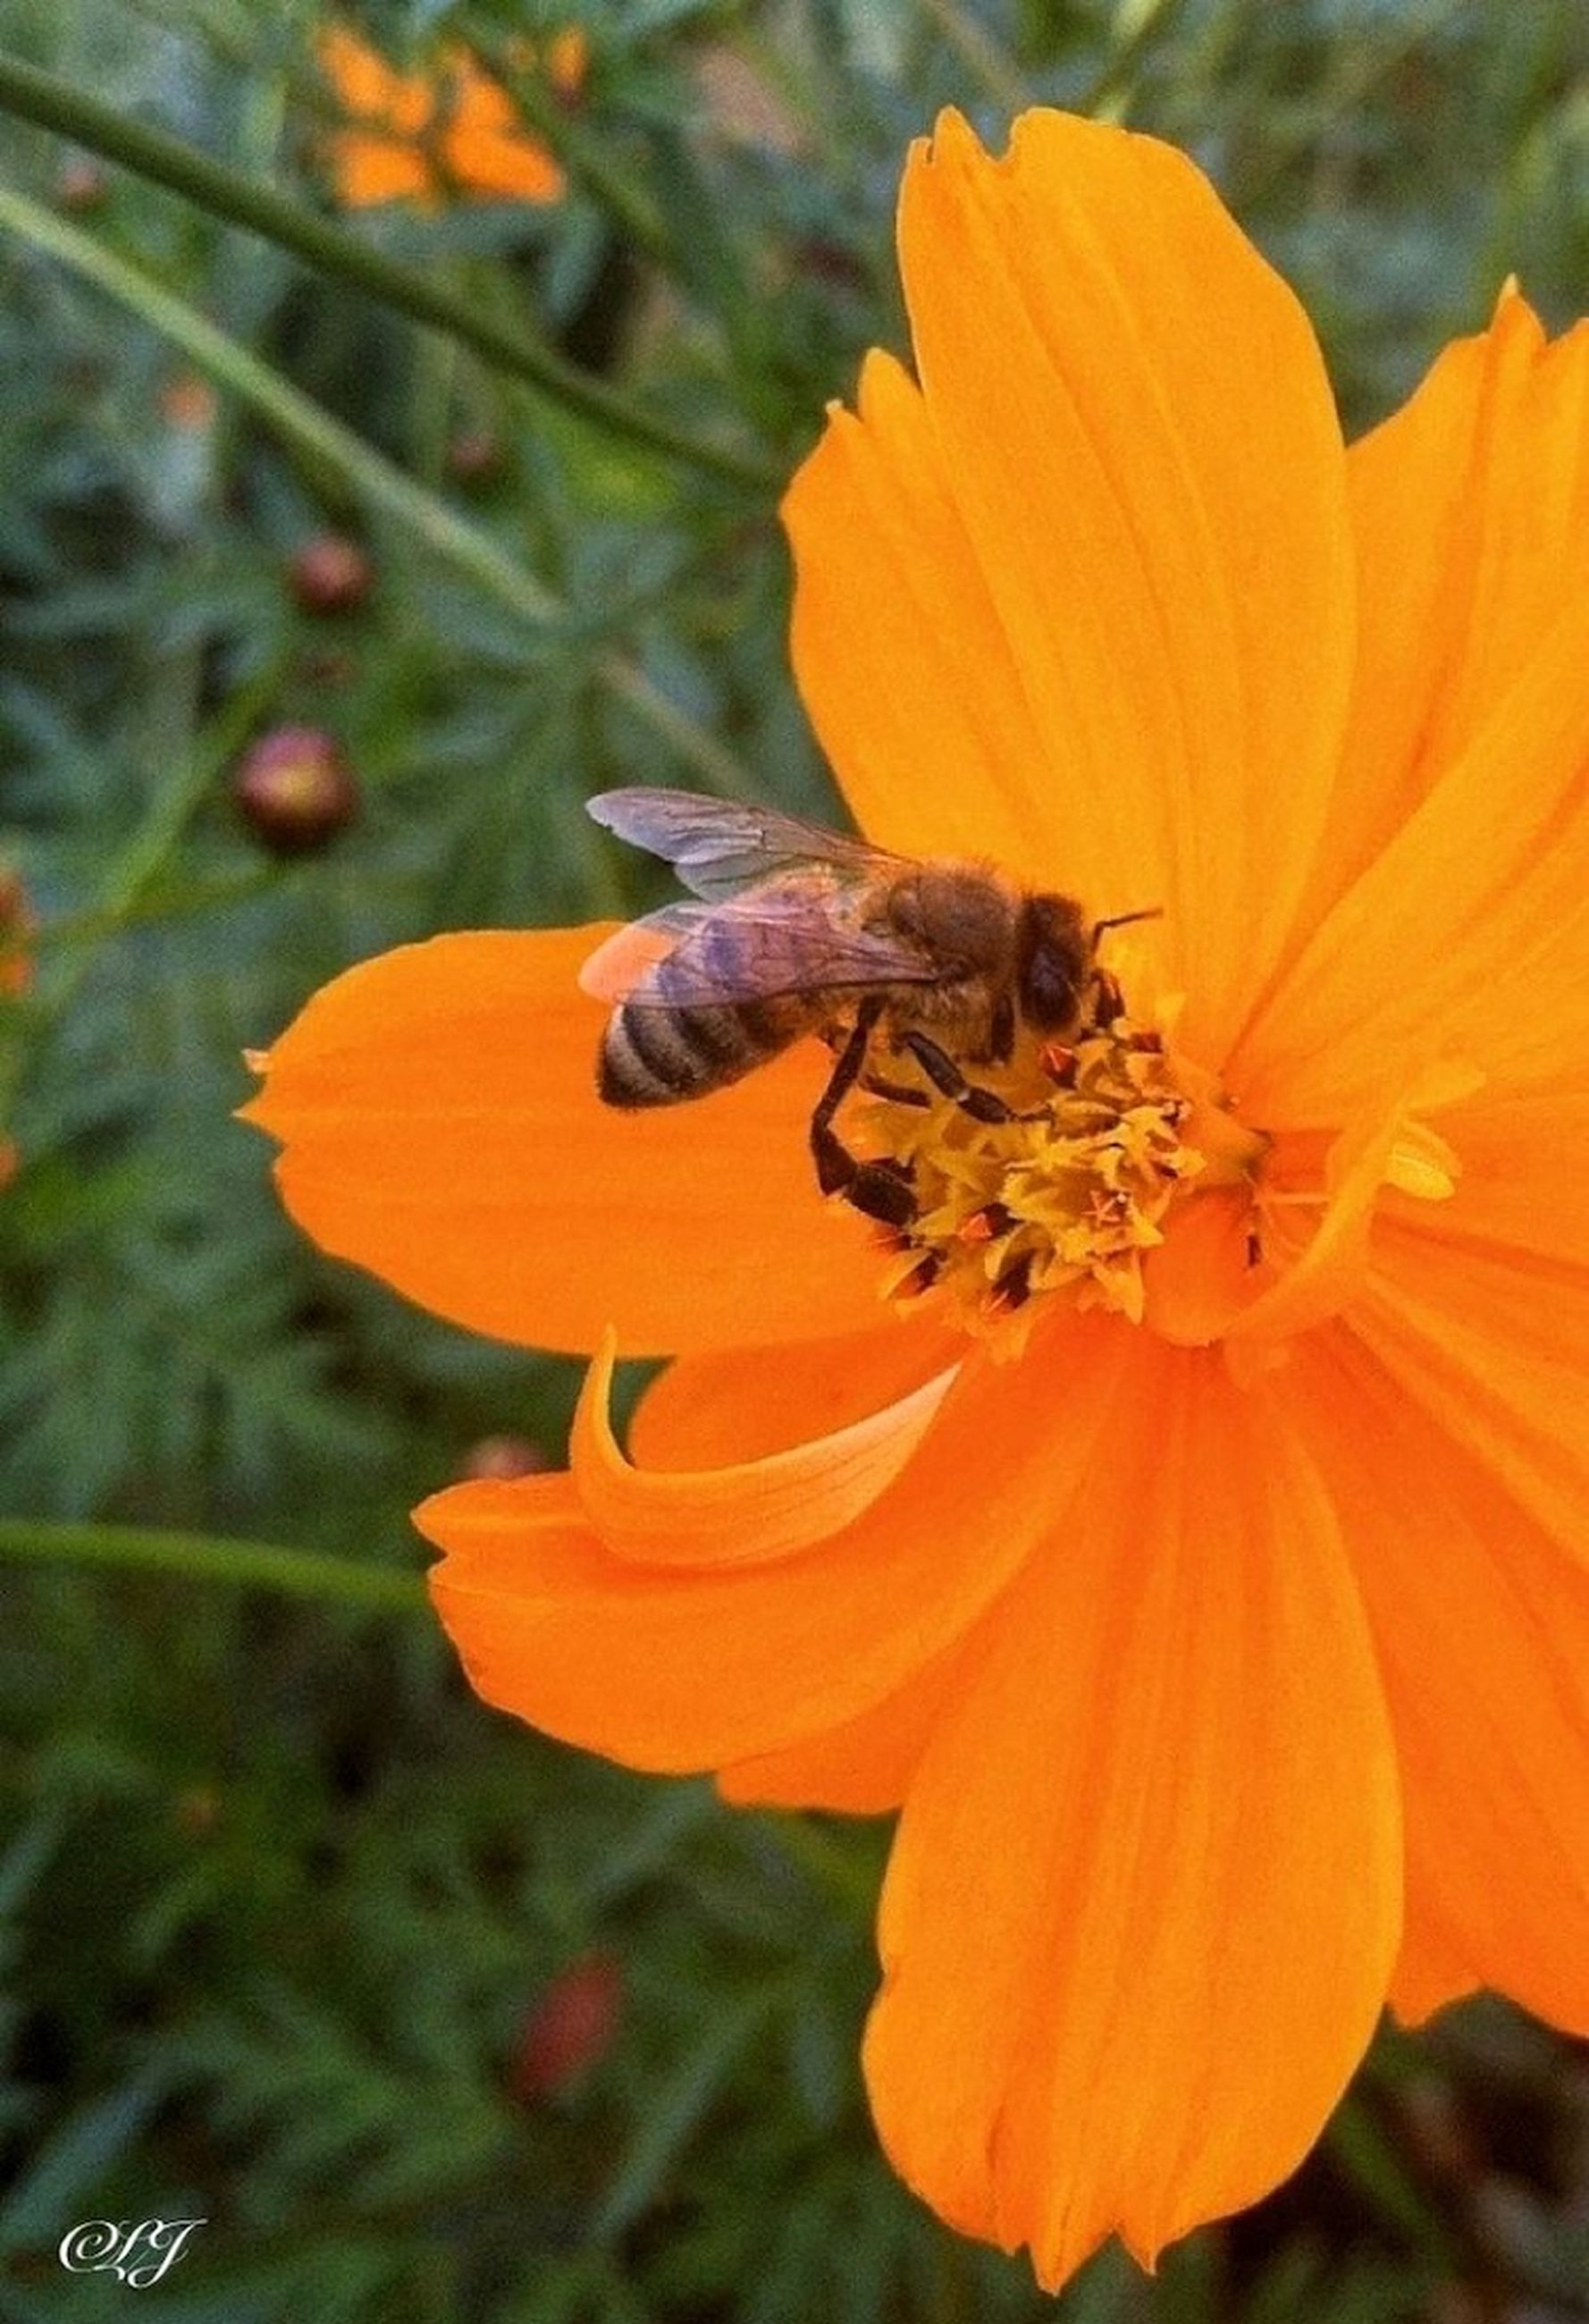 flower, animal themes, one animal, petal, orange color, fragility, insect, animals in the wild, wildlife, flower head, focus on foreground, freshness, beauty in nature, pollination, close-up, nature, yellow, growth, plant, blooming